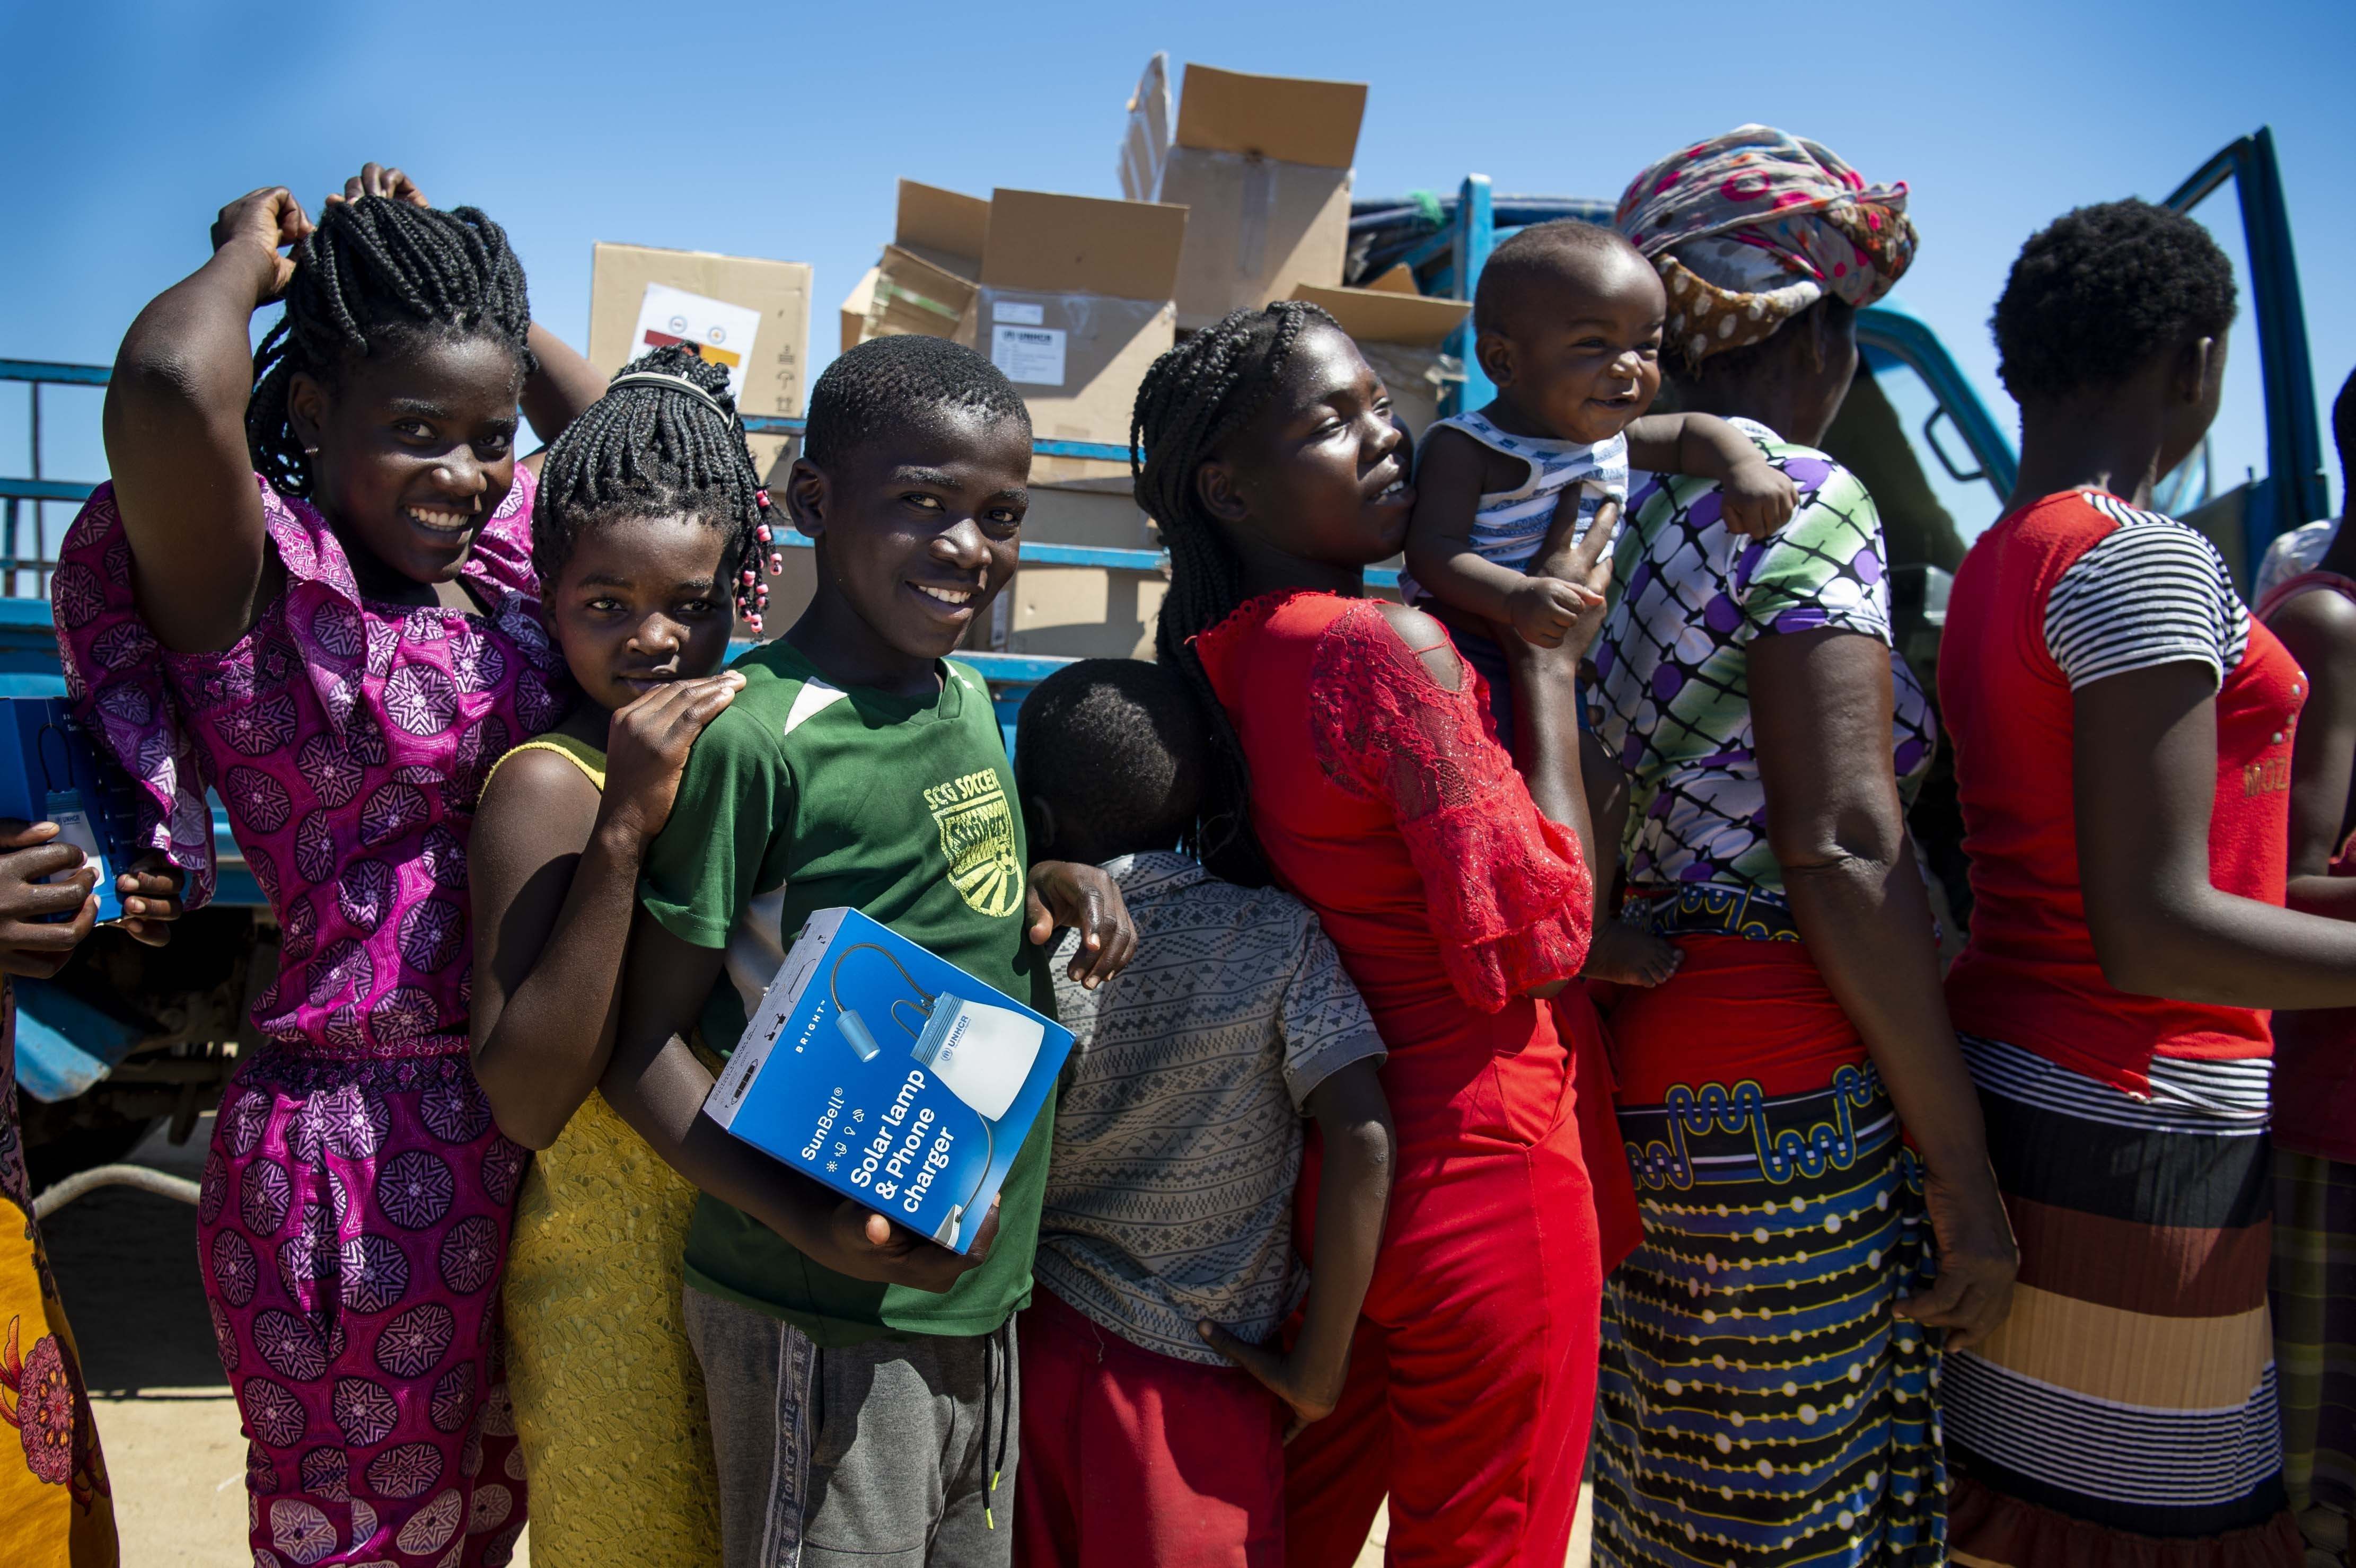 Women and children wait in a food distribution line with new solar lanterns in hand.